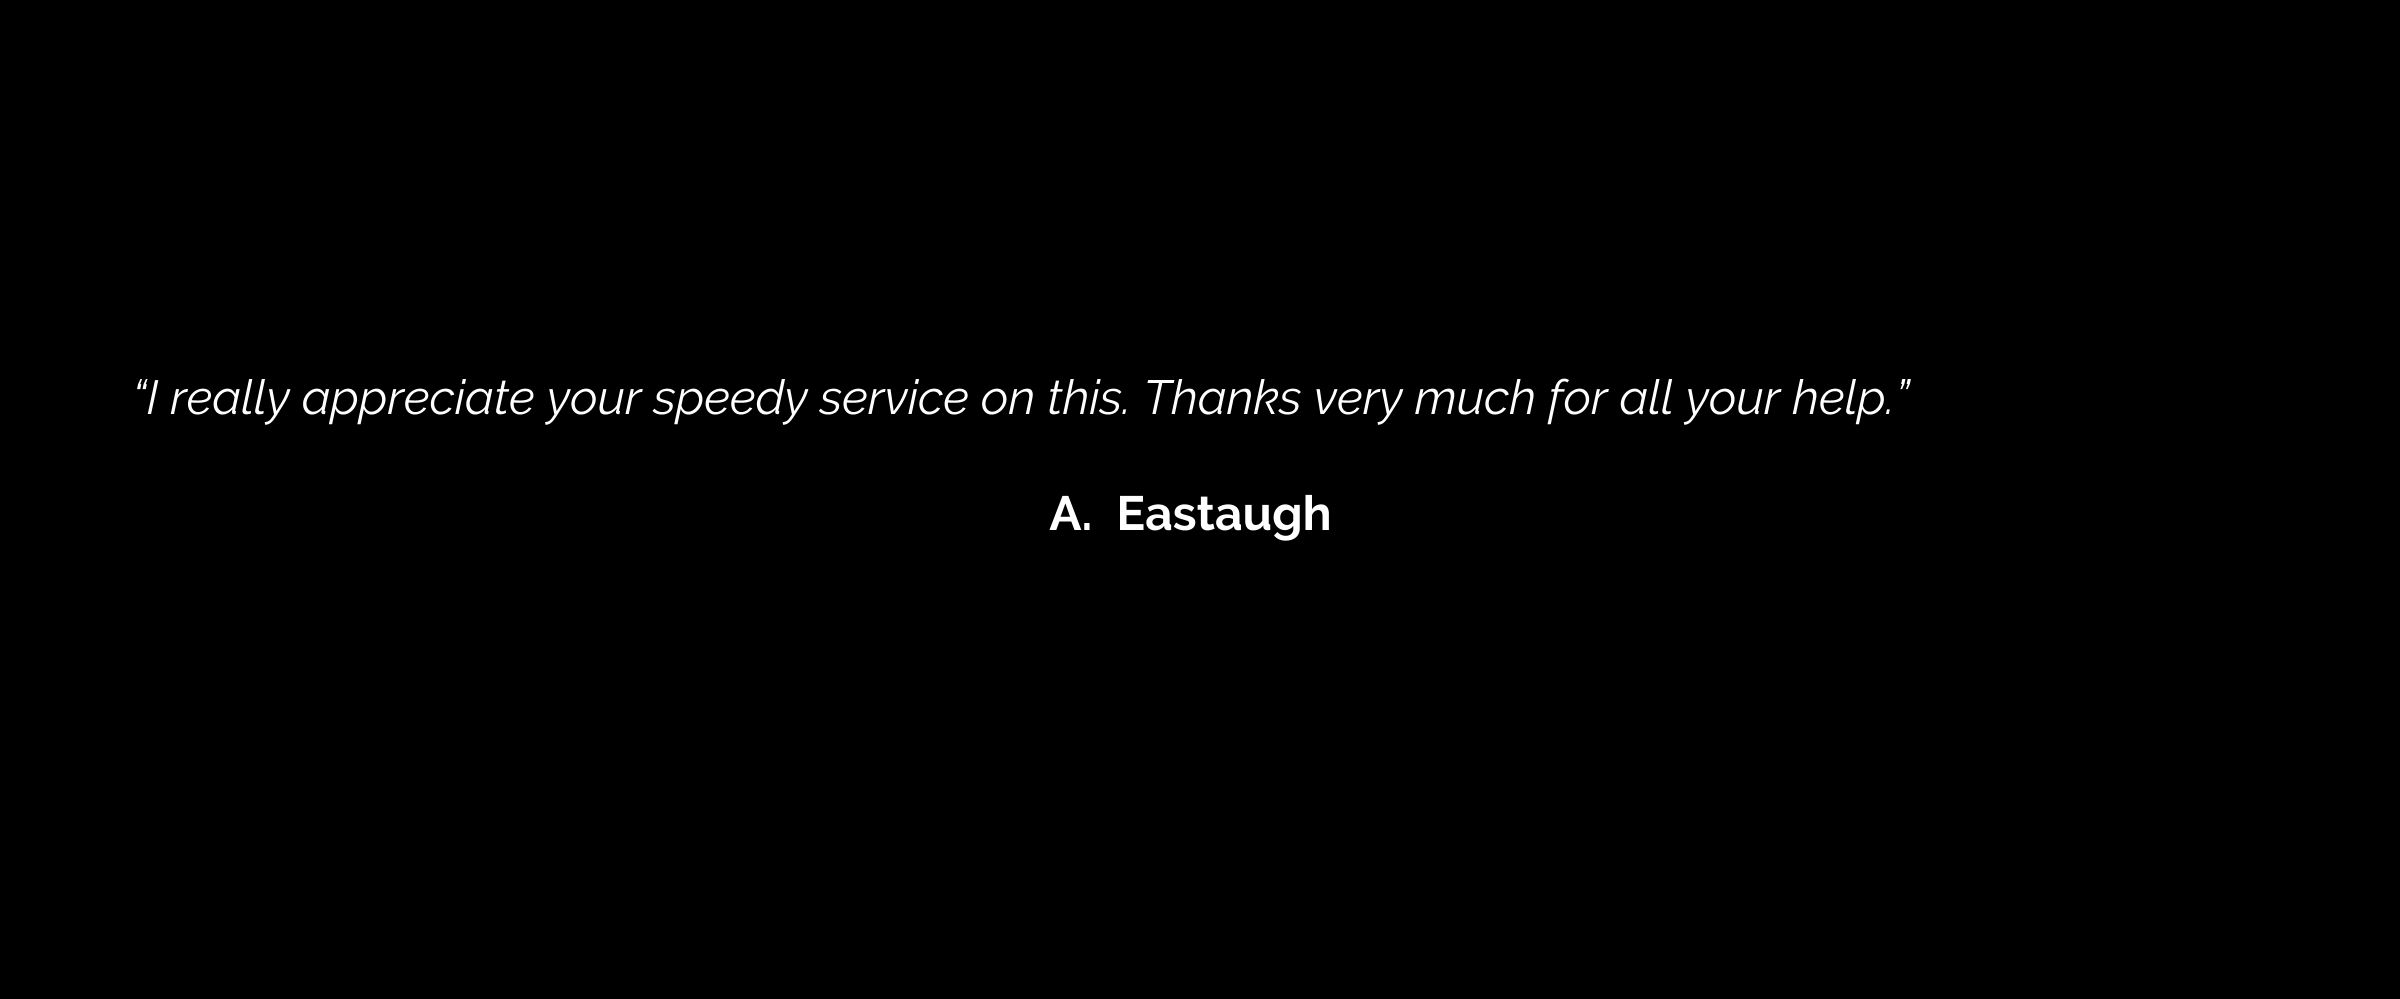 A Eastaugh Testimonial.png